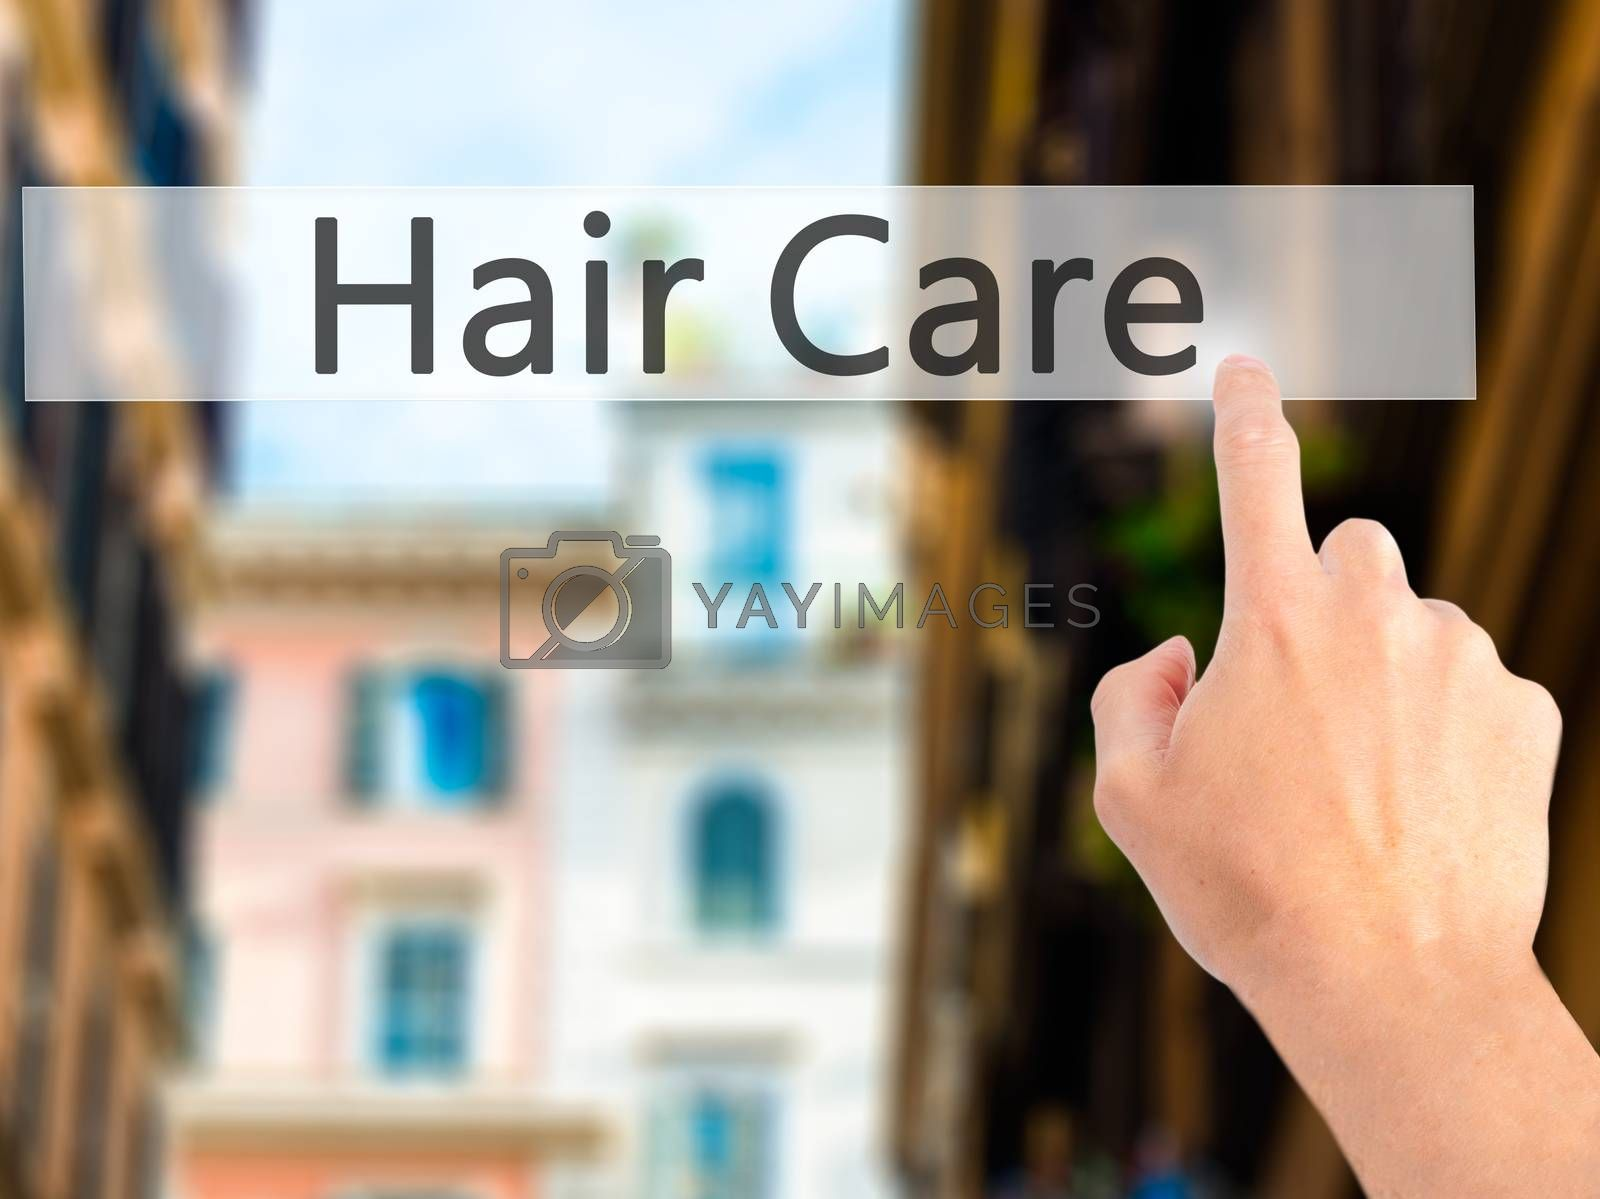 Hair Care - Hand pressing a button on blurred background concept by netsay.net